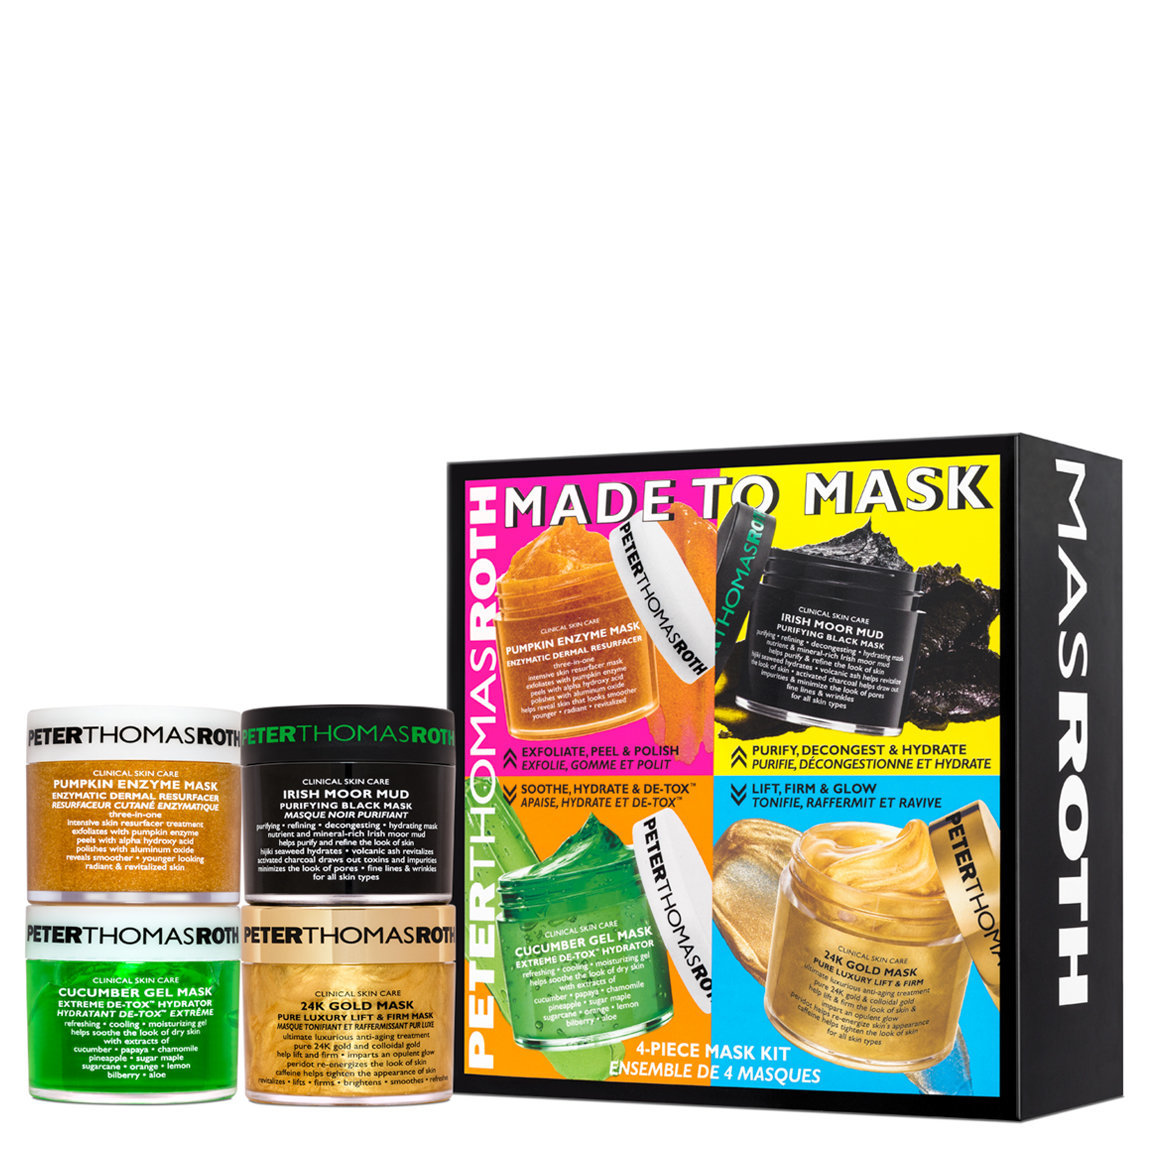 Peter Thomas Roth Made To Mask 4-Piece Mask Kit alternative view 1 - product swatch.